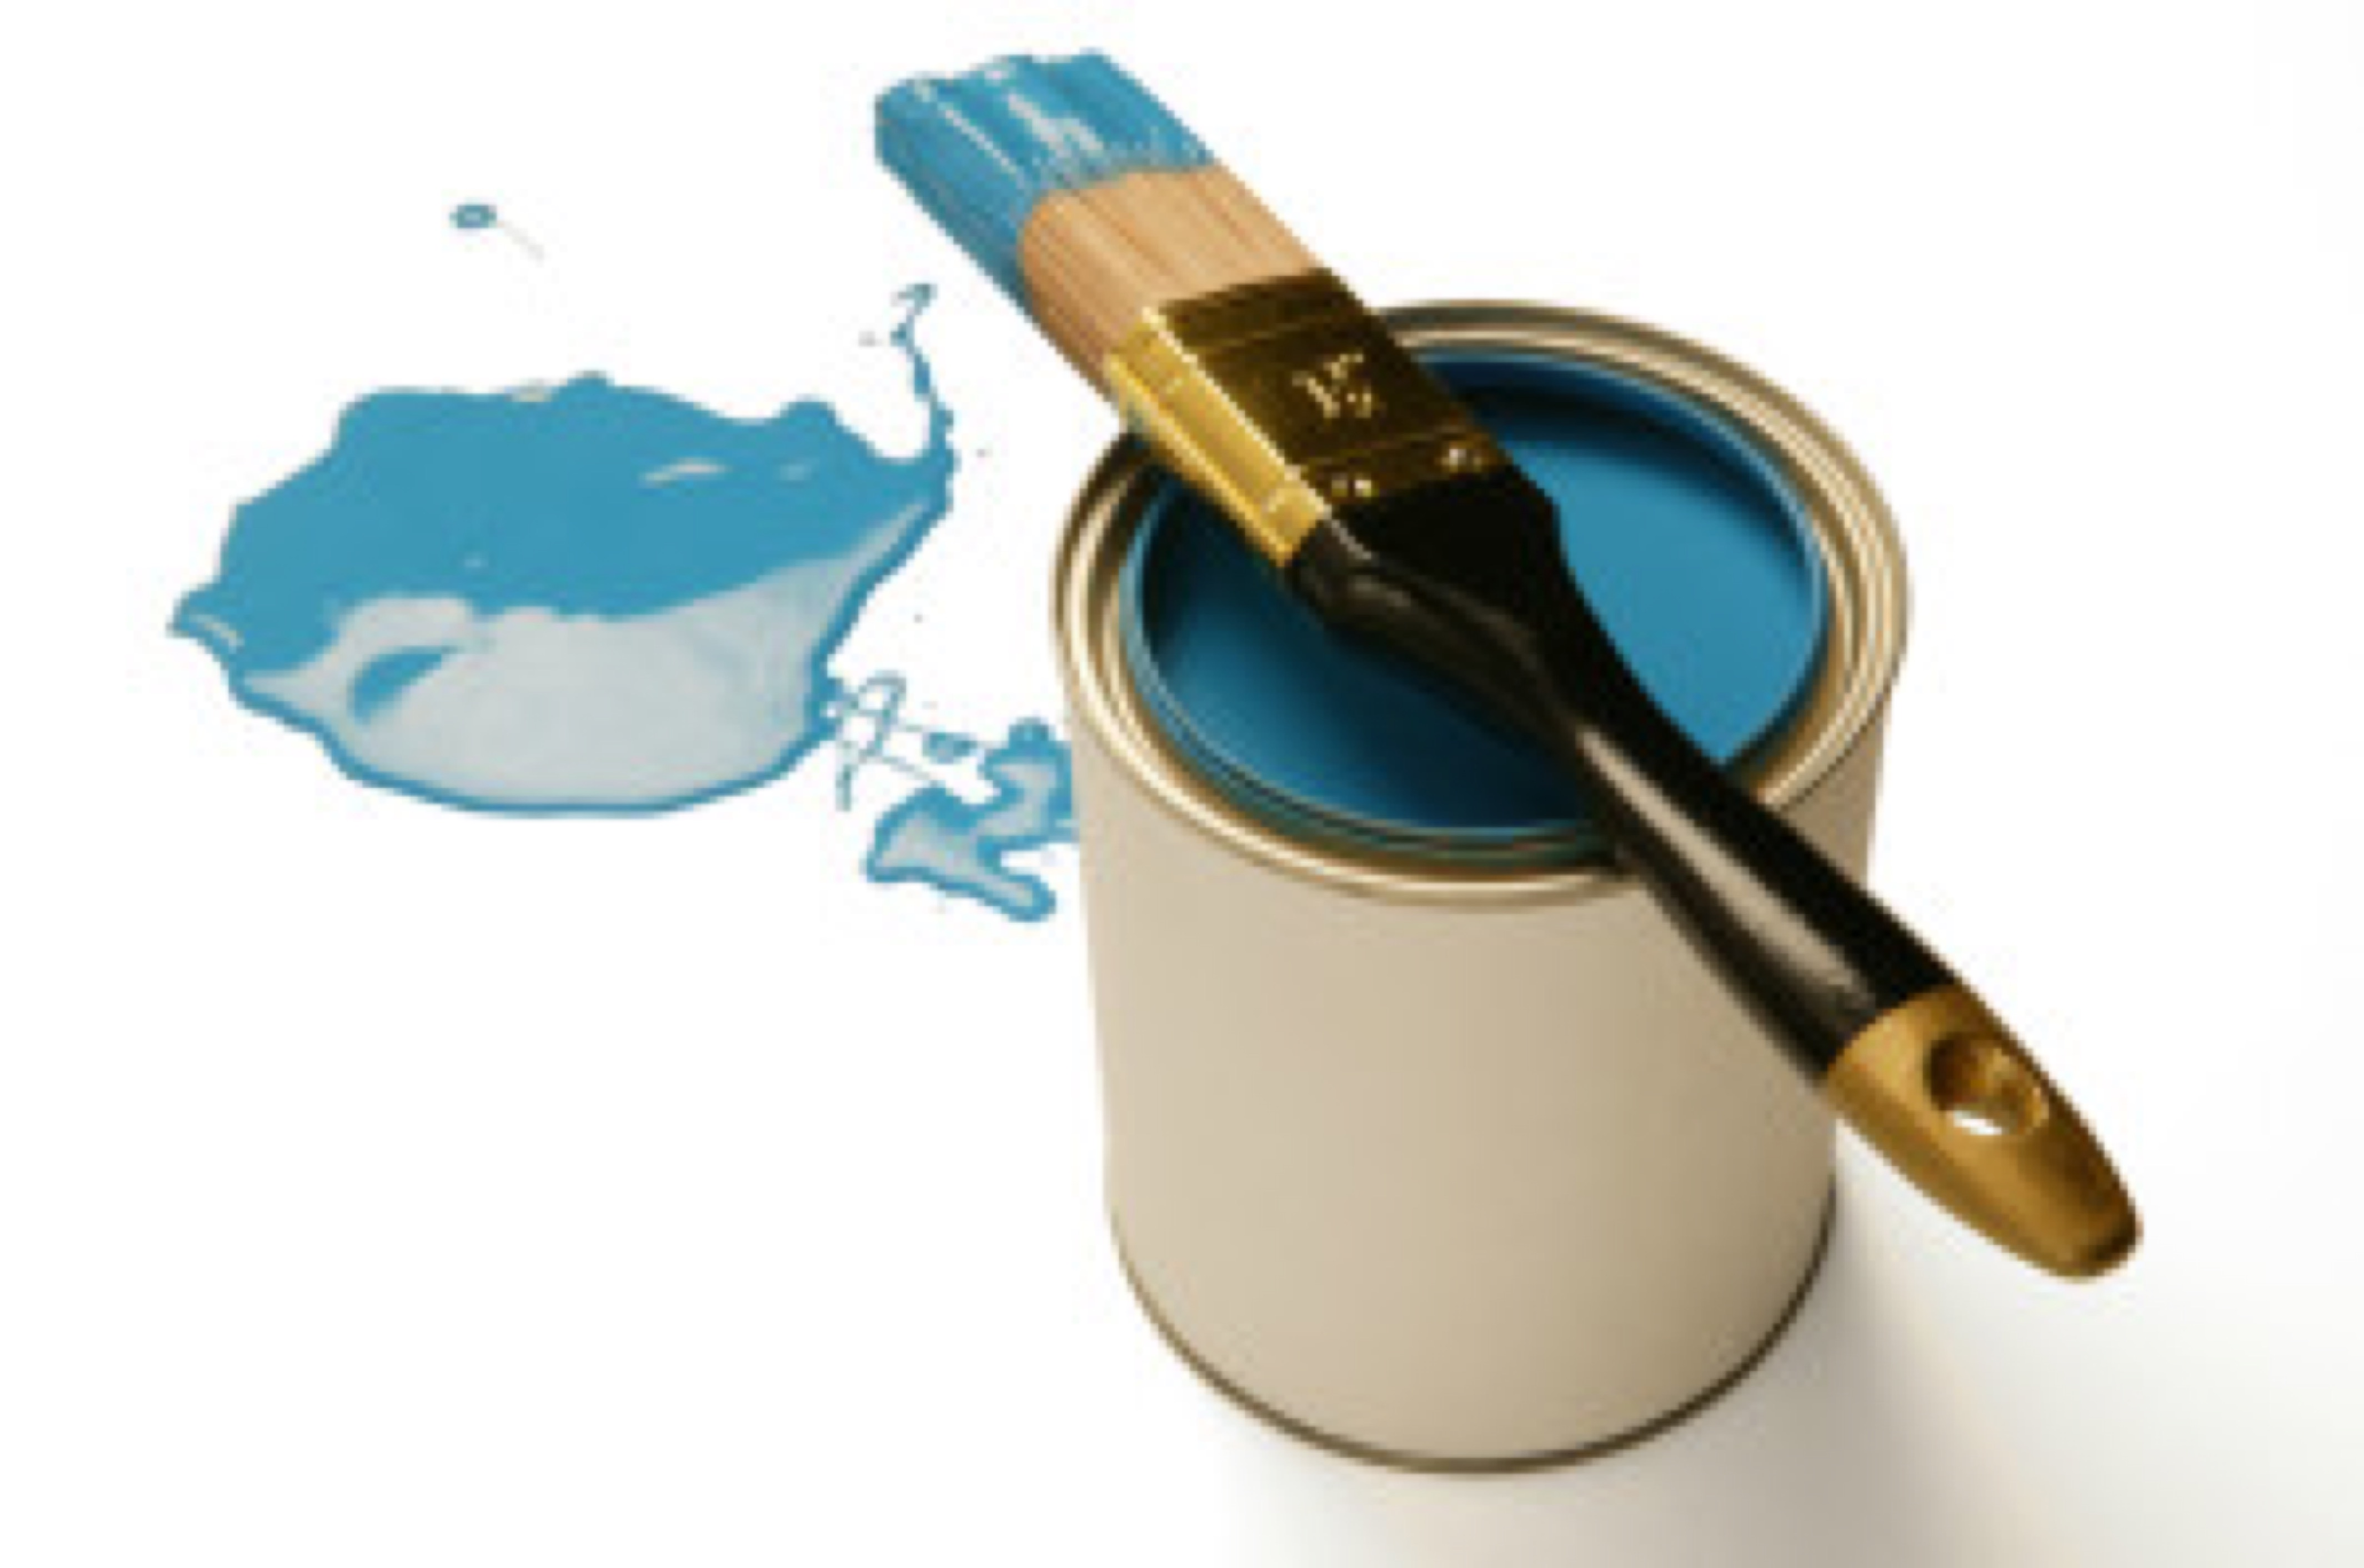 paintbrush and on can